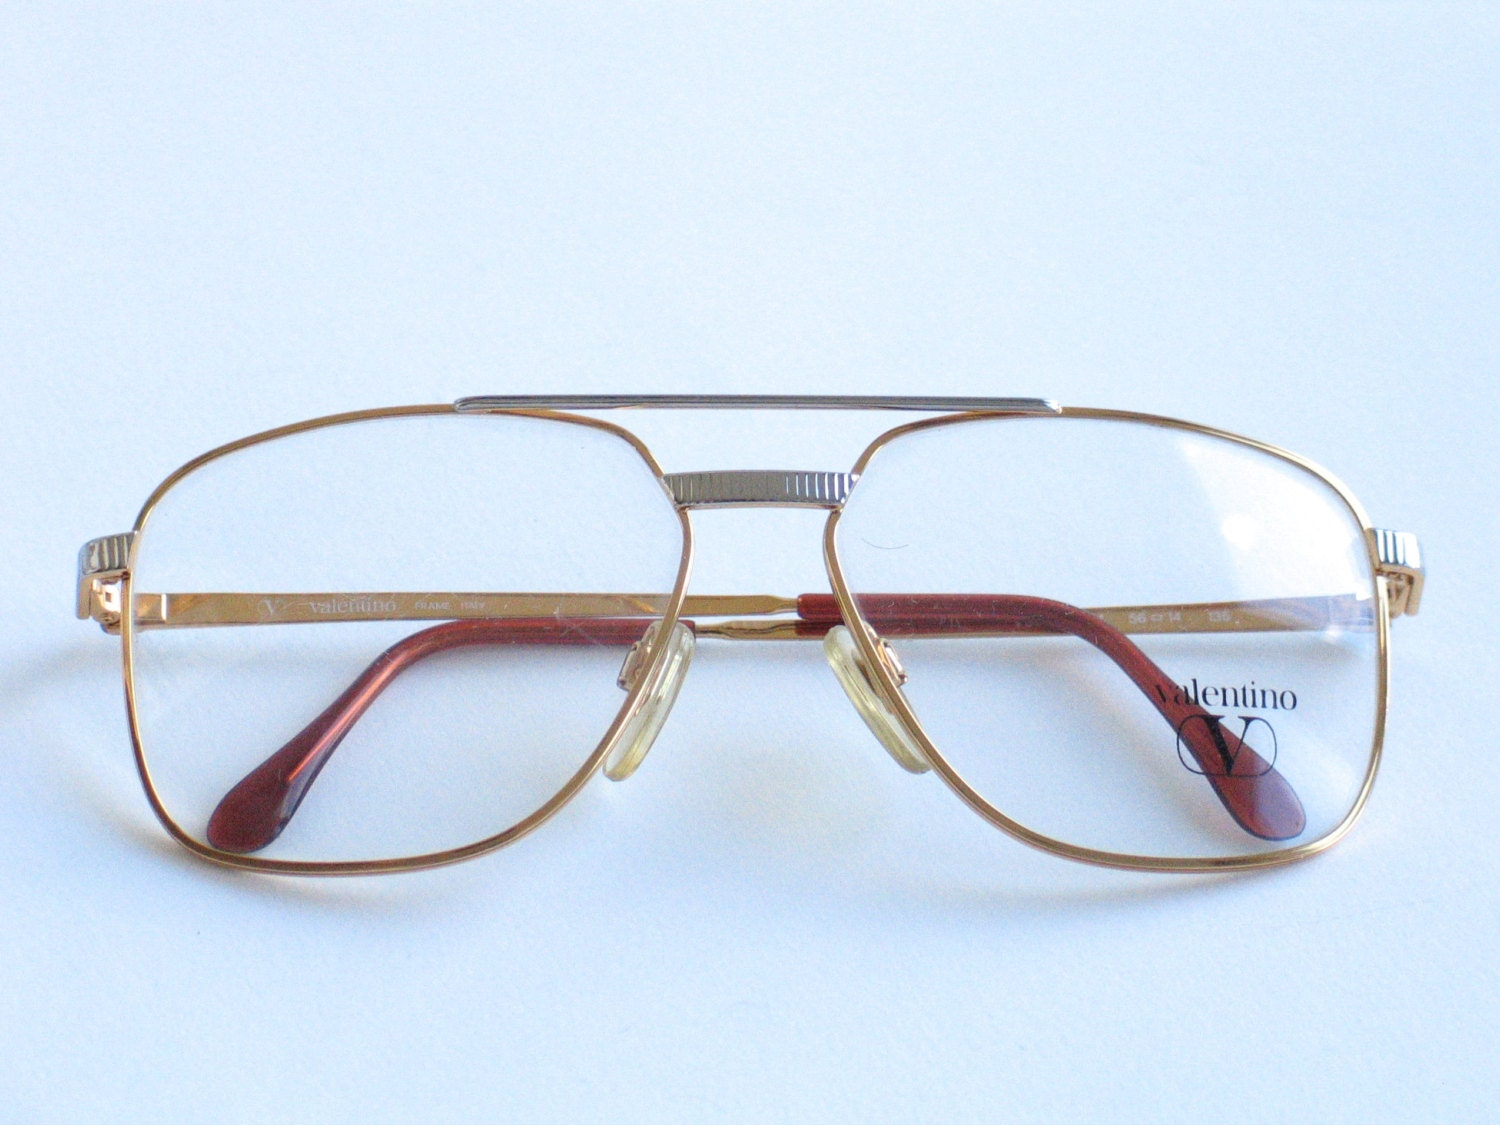 Valentino Glasses Frames 2015 : Valentino metal vintage eyeglasses frame for men. Made in ...